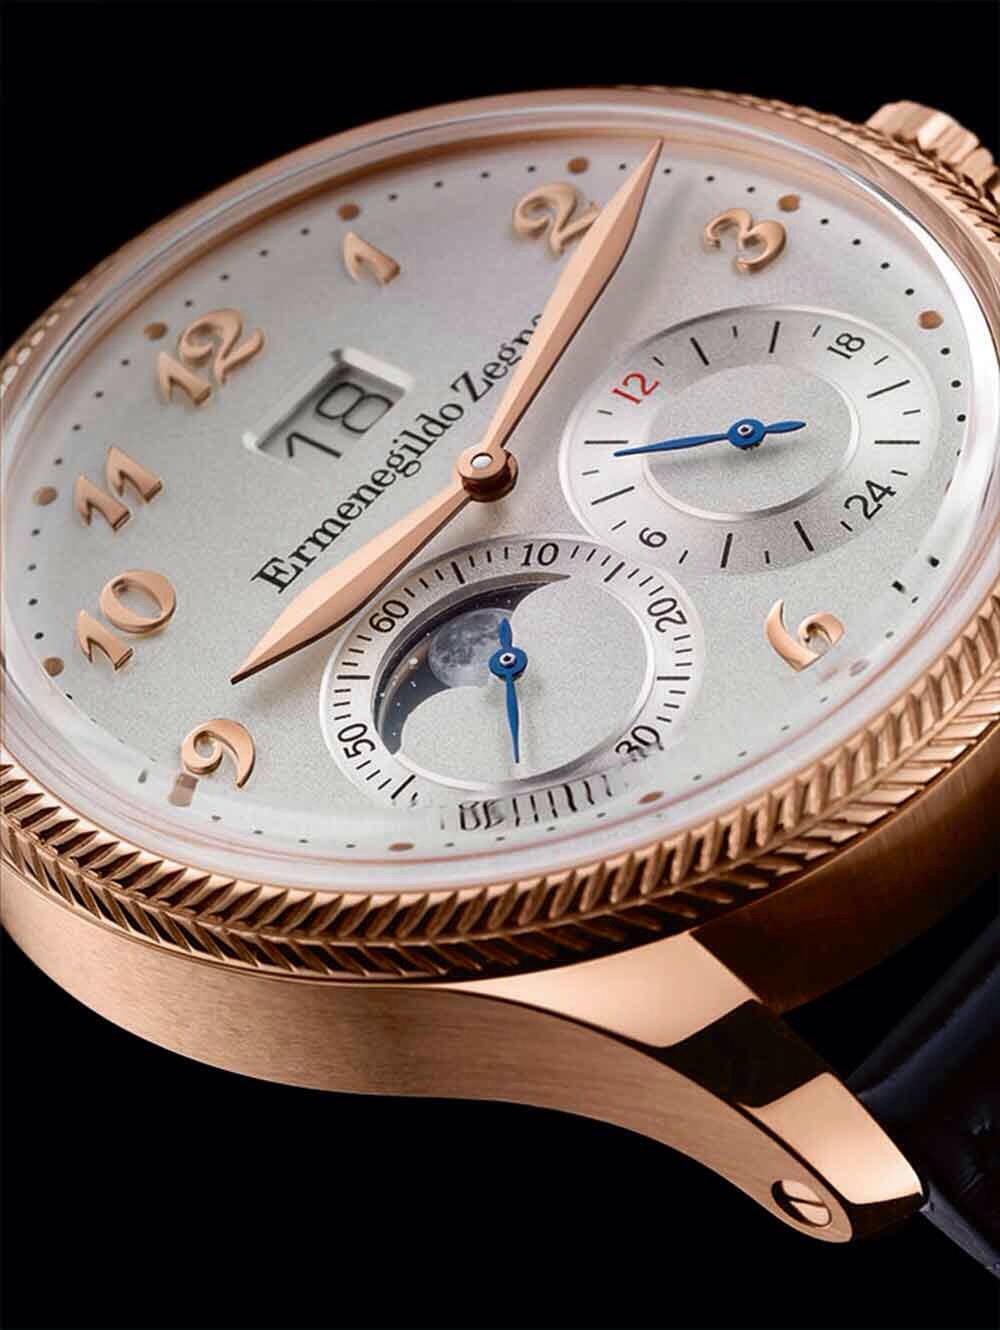 Monterubello Travel watch with Big Date, Moon phase and GMT